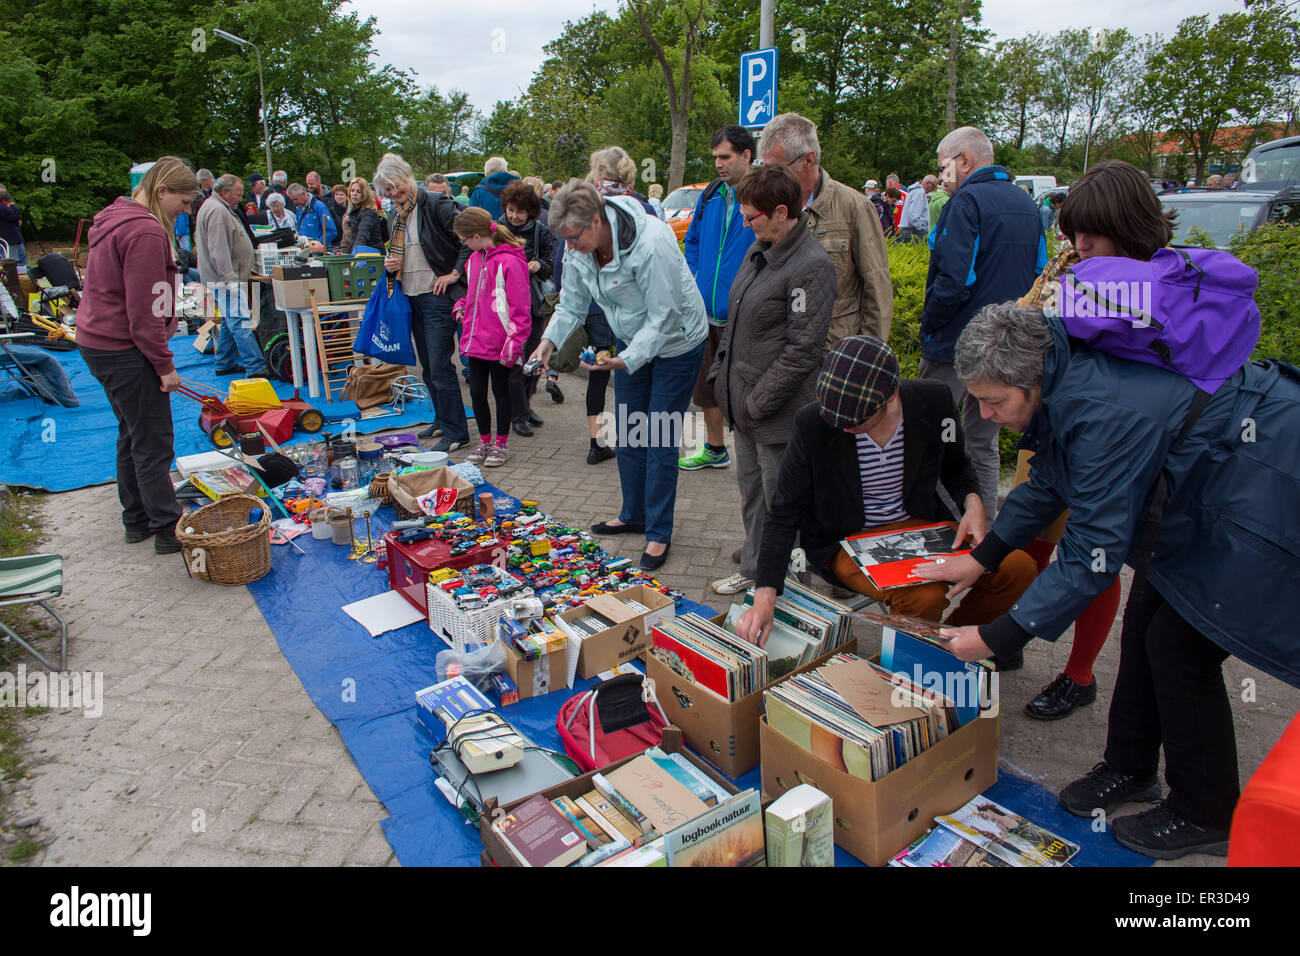 jumble sale in Holland - Stock Image